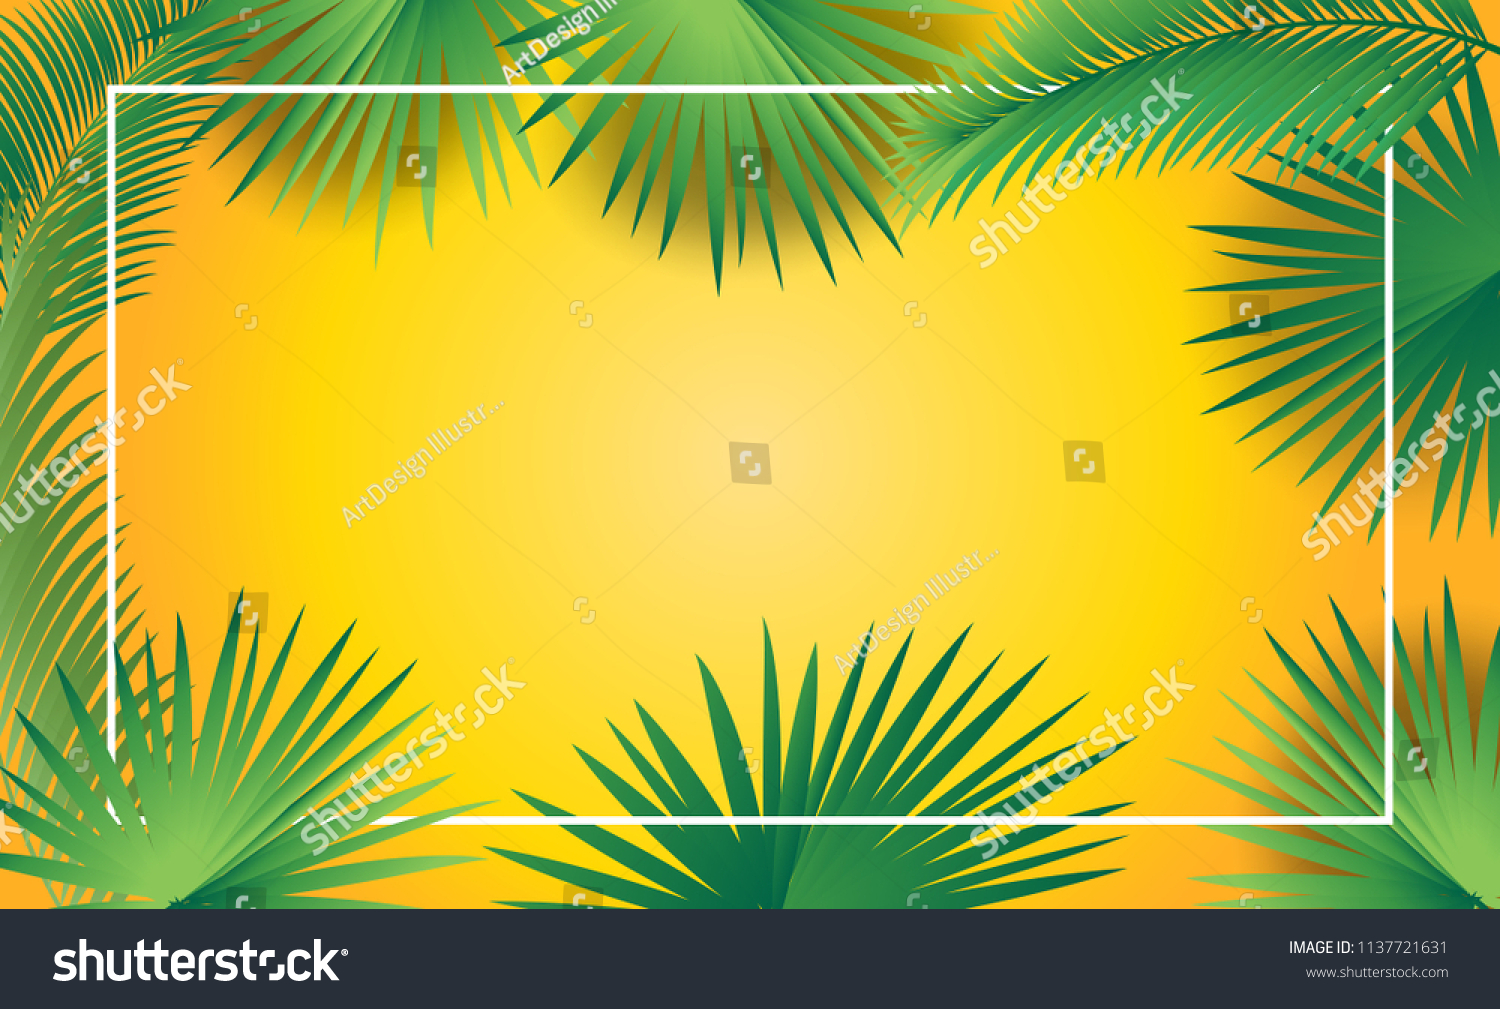 Rosh Hashanah Sukkot Greeting Card Border Stock Vector Royalty Free